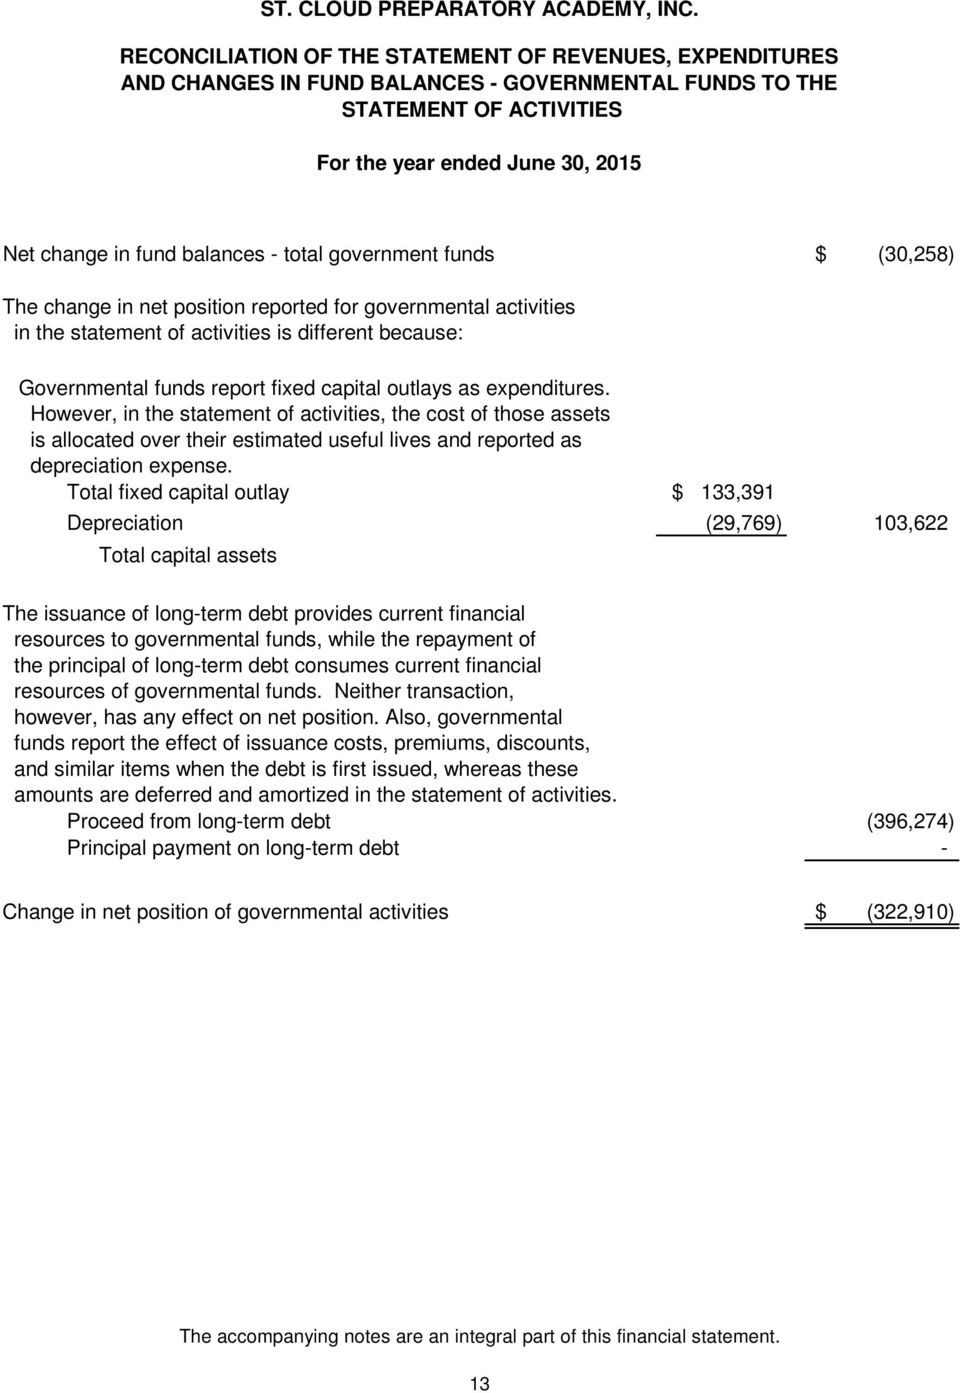 - total government funds $ (30,258) The change in net position reported for governmental activities in the statement of activities is different because: Governmental funds report fixed capital